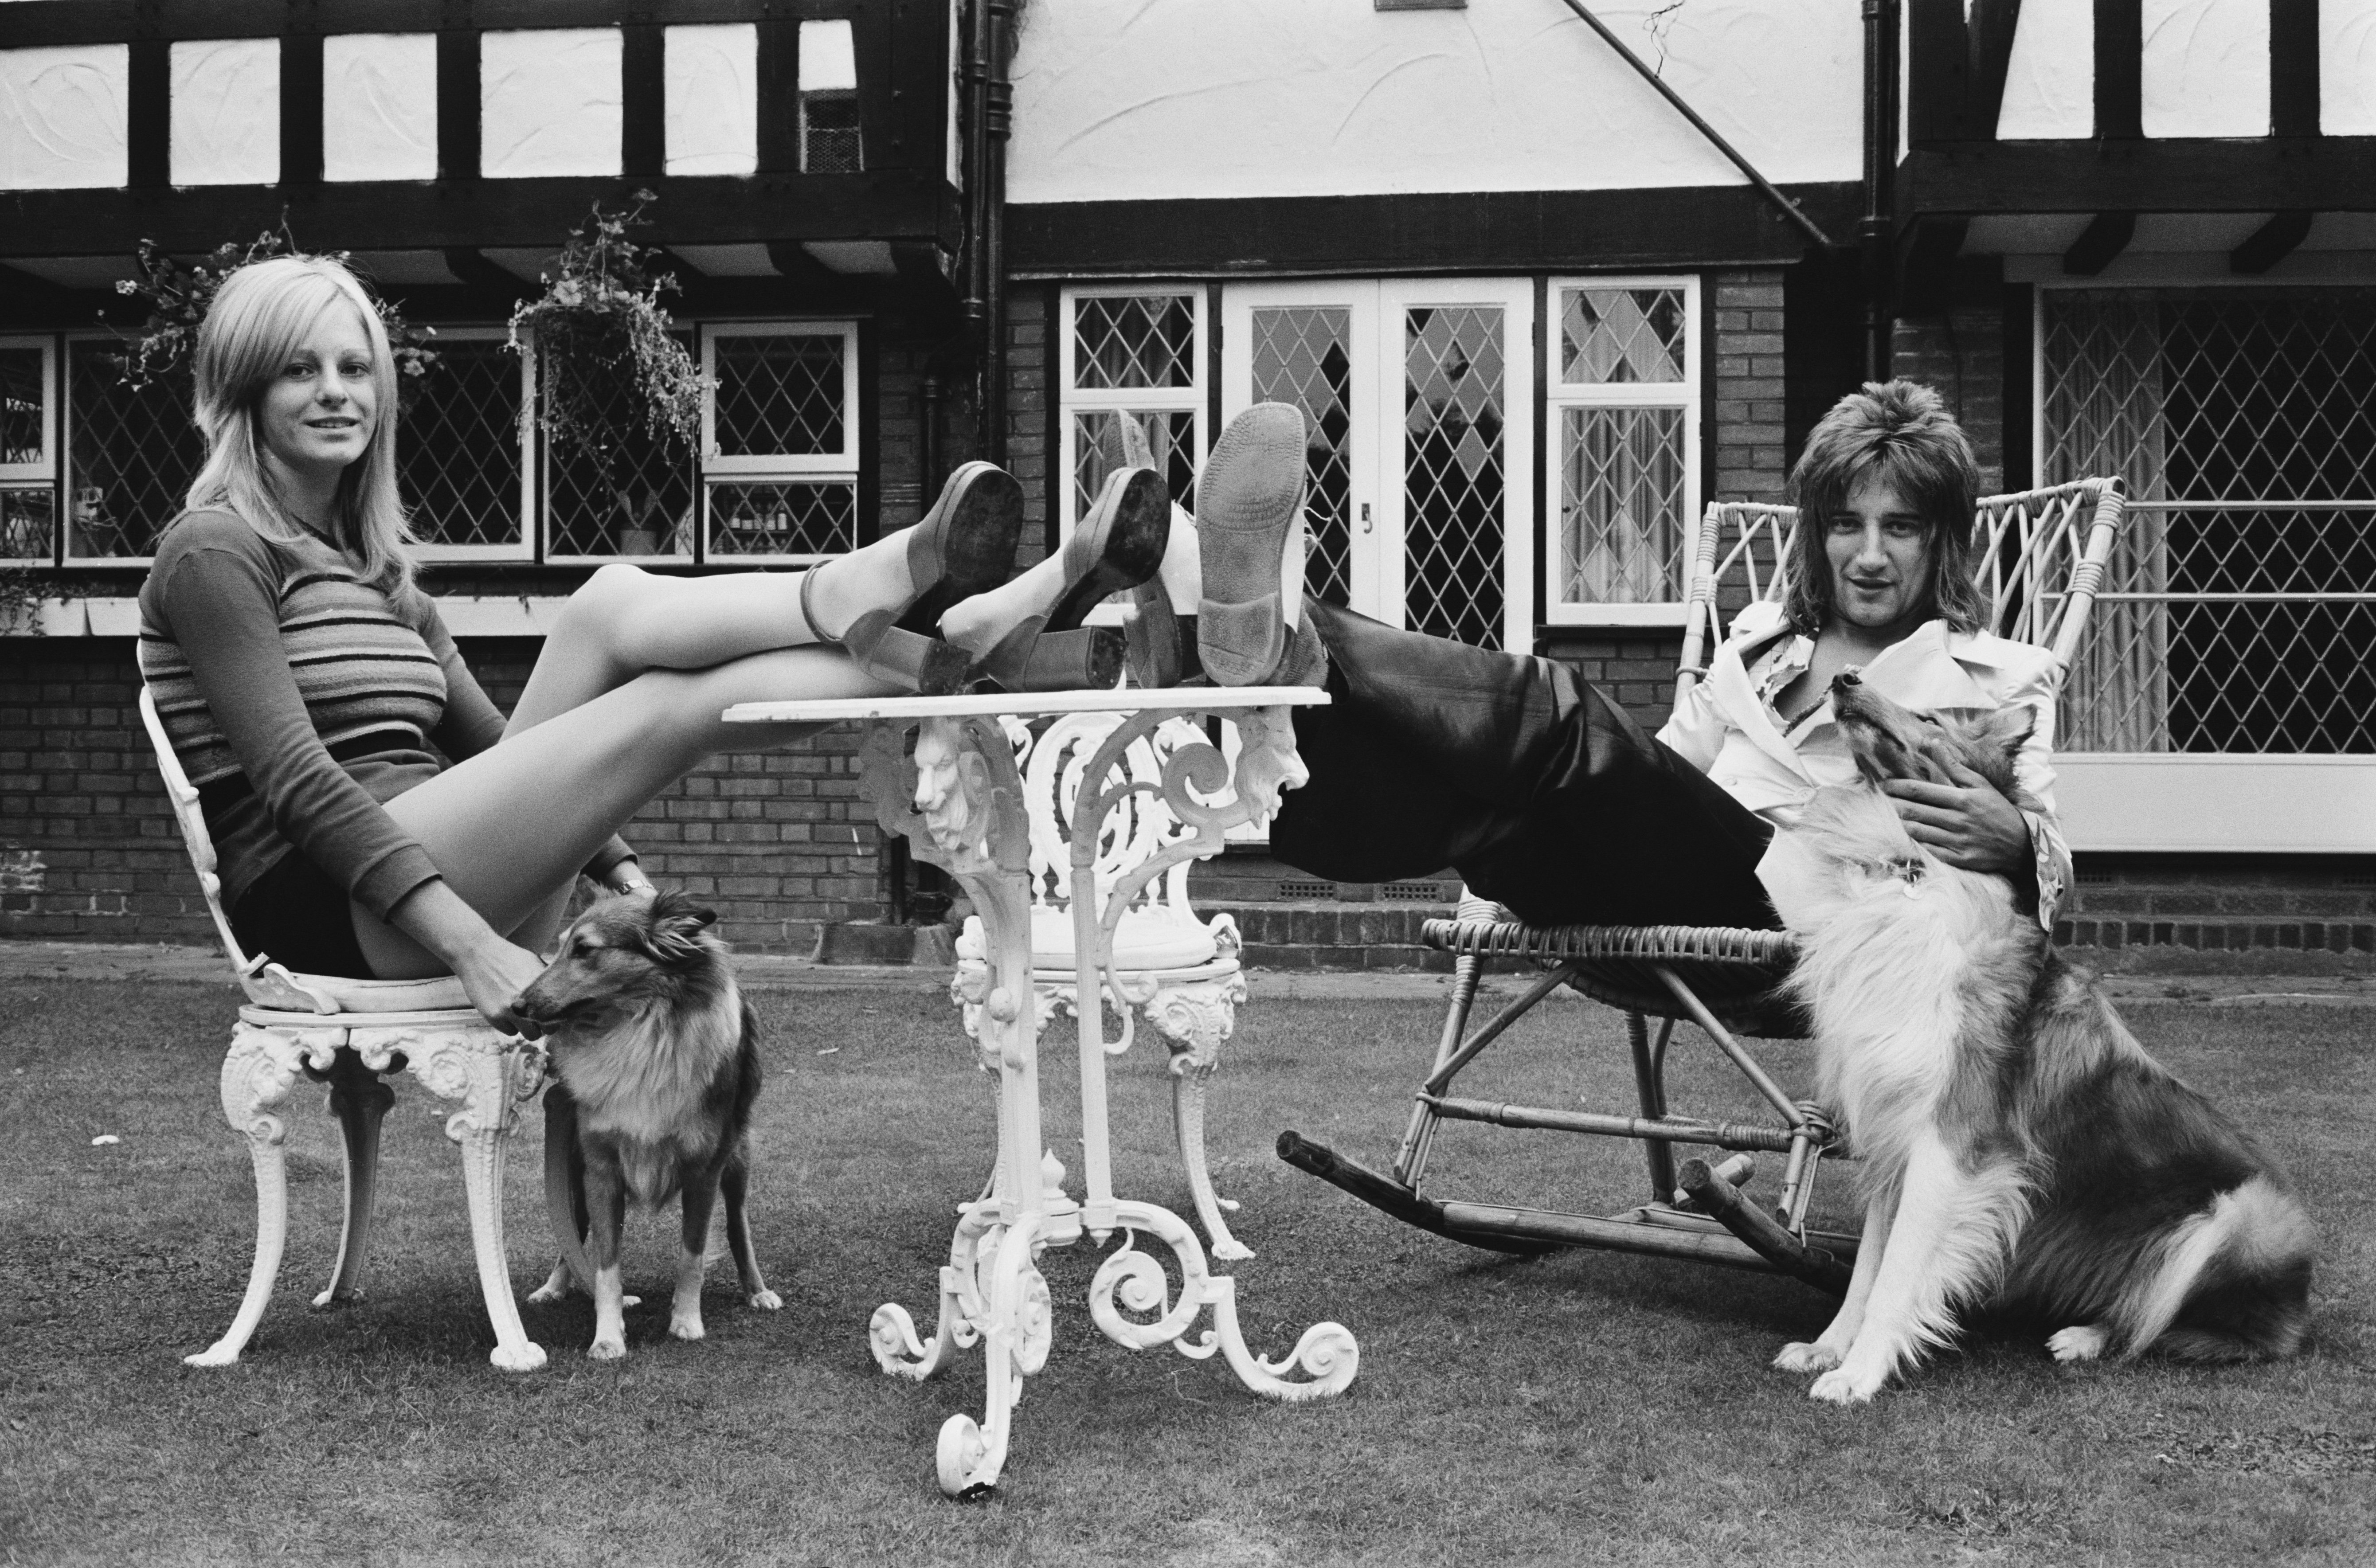 British rock singer Rod Stewart with his girlfriend, model Dee Harrington, UK, 12th September 1971.  (Photo by Victor Blackman/Express/Hulton Archive/Getty Images)